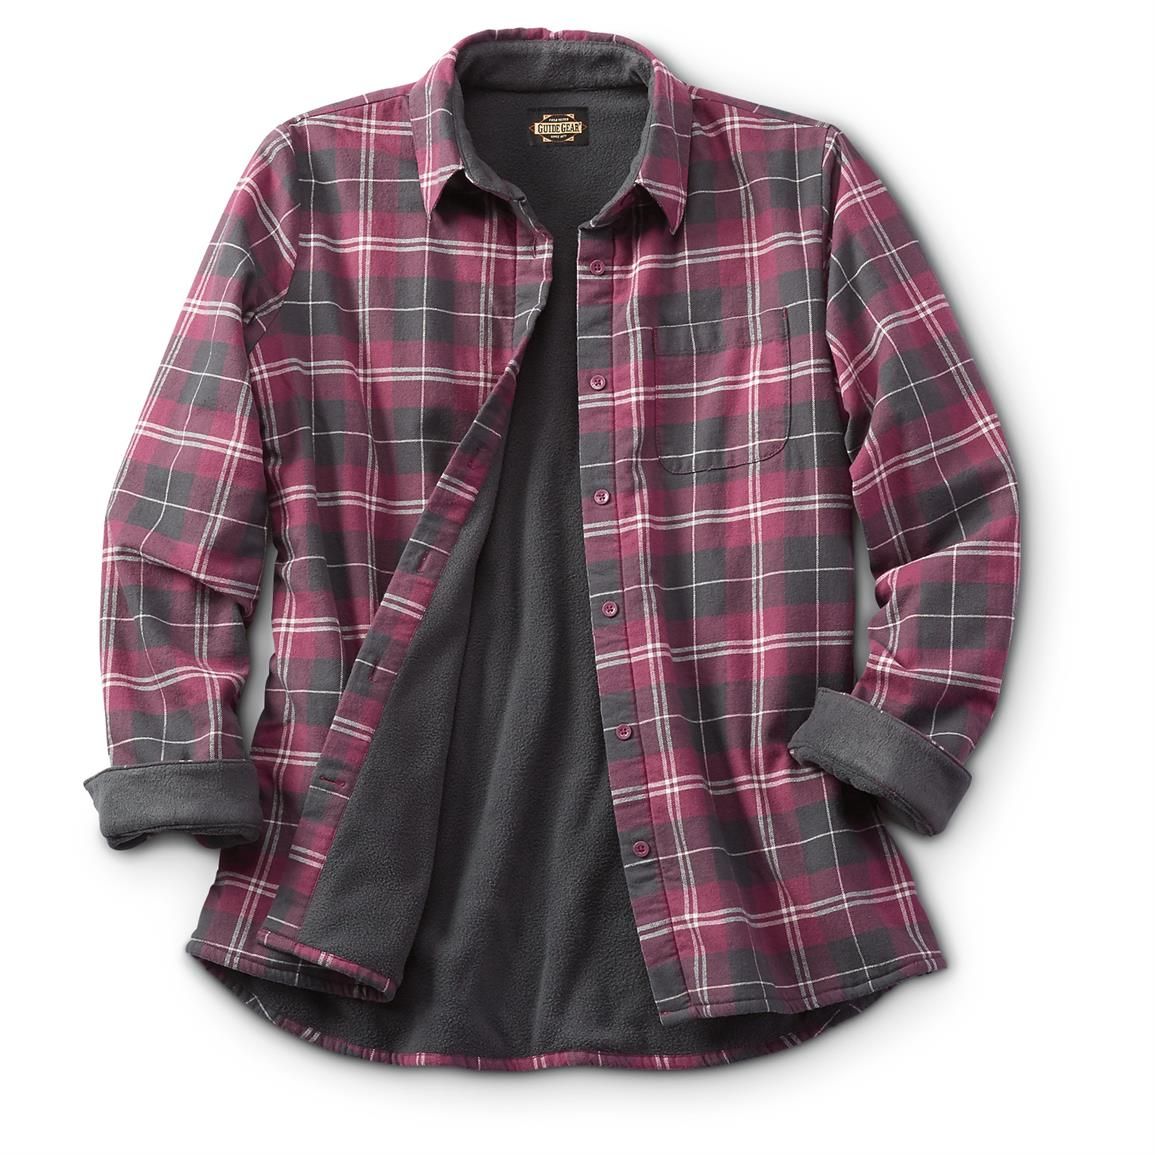 Bring Out Your Best Style Statement by Wearing the Awesome Flannel Shirts